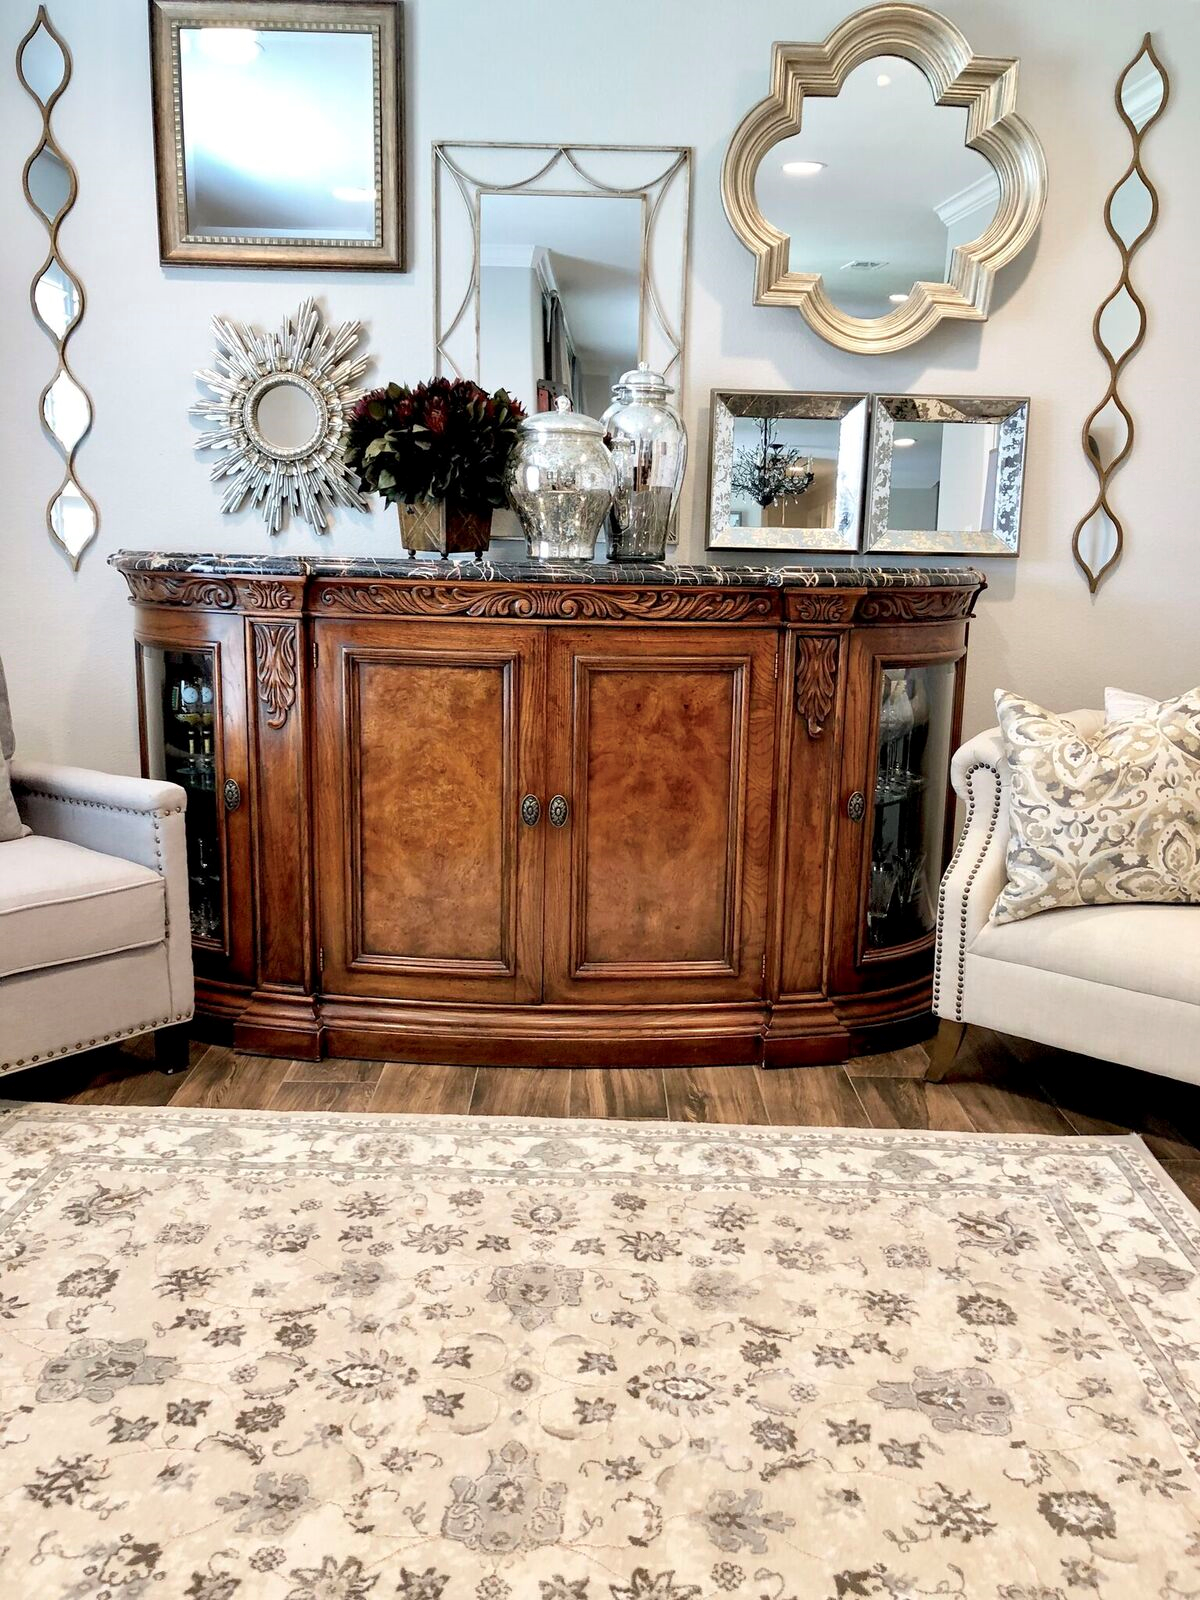 Mixing Traditional Furniture With Modern Day Style L Mixing Styles Modern Home Decor Buffet Table Buf Traditional Furniture Home Decor Console Table Decorating #traditional #furniture #styles #living #room